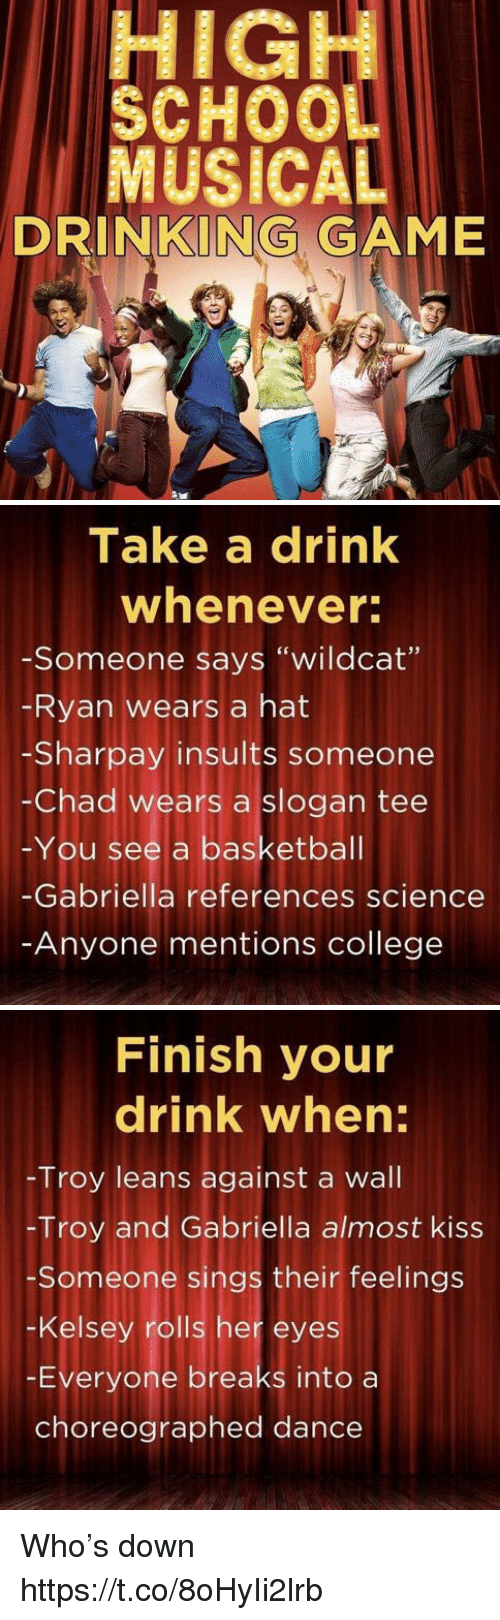 "Chads: HIGH  SCHOO  MUSICAL  DRINKING GAME   Take a drink  whenever  -Someone says ""wildcat""  Ryan wears a hat  -Sharpay insults someone  -Chad wears a slogan tee  -You see a basketbal  -Gabriella references science  Anyone mentions college   Finish your  drink when:  Troy leans against a wall  -Troy and Gabriella almost kiss  Someone sings their feelings  -Kelsey rolls her eyes  -Everyone breaks into a  choreographed dance Who's down https://t.co/8oHyIi2lrb"